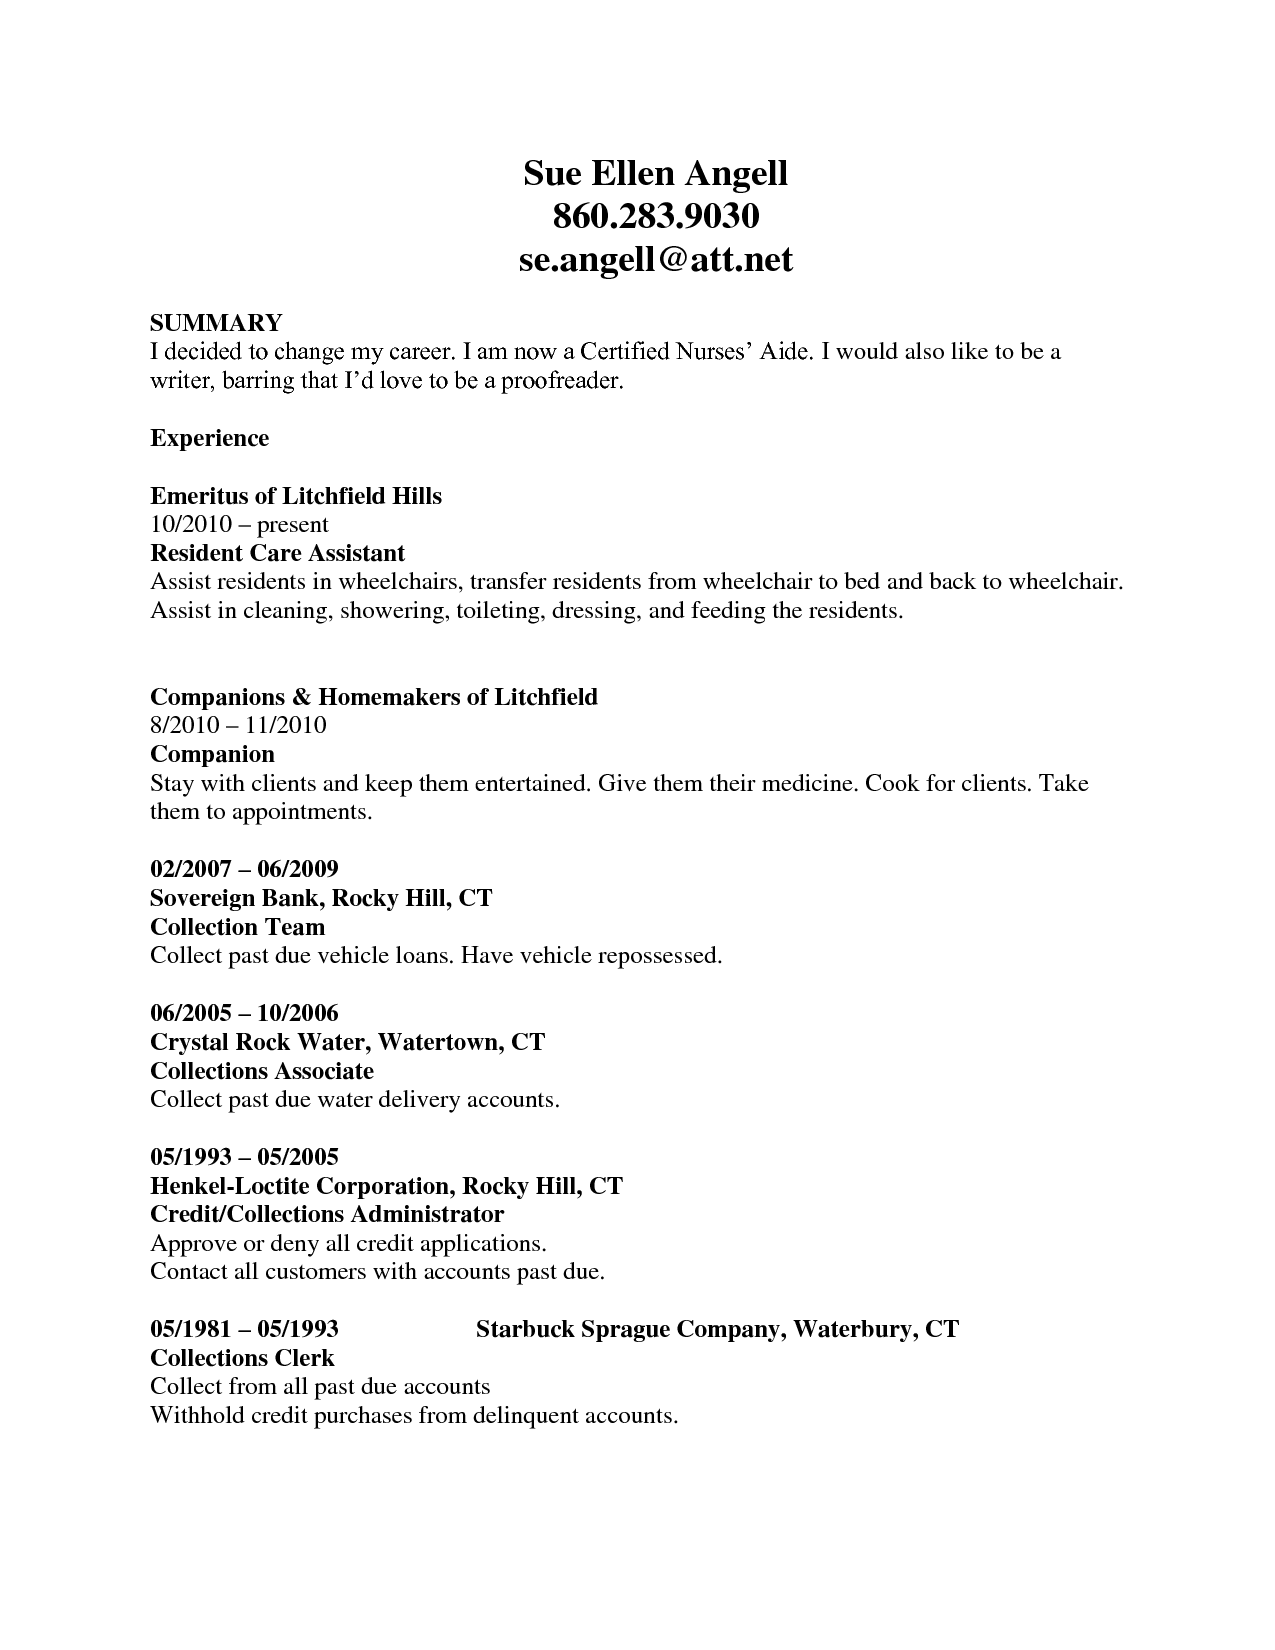 cna resume example click to zoom - Objectives Resume Sample